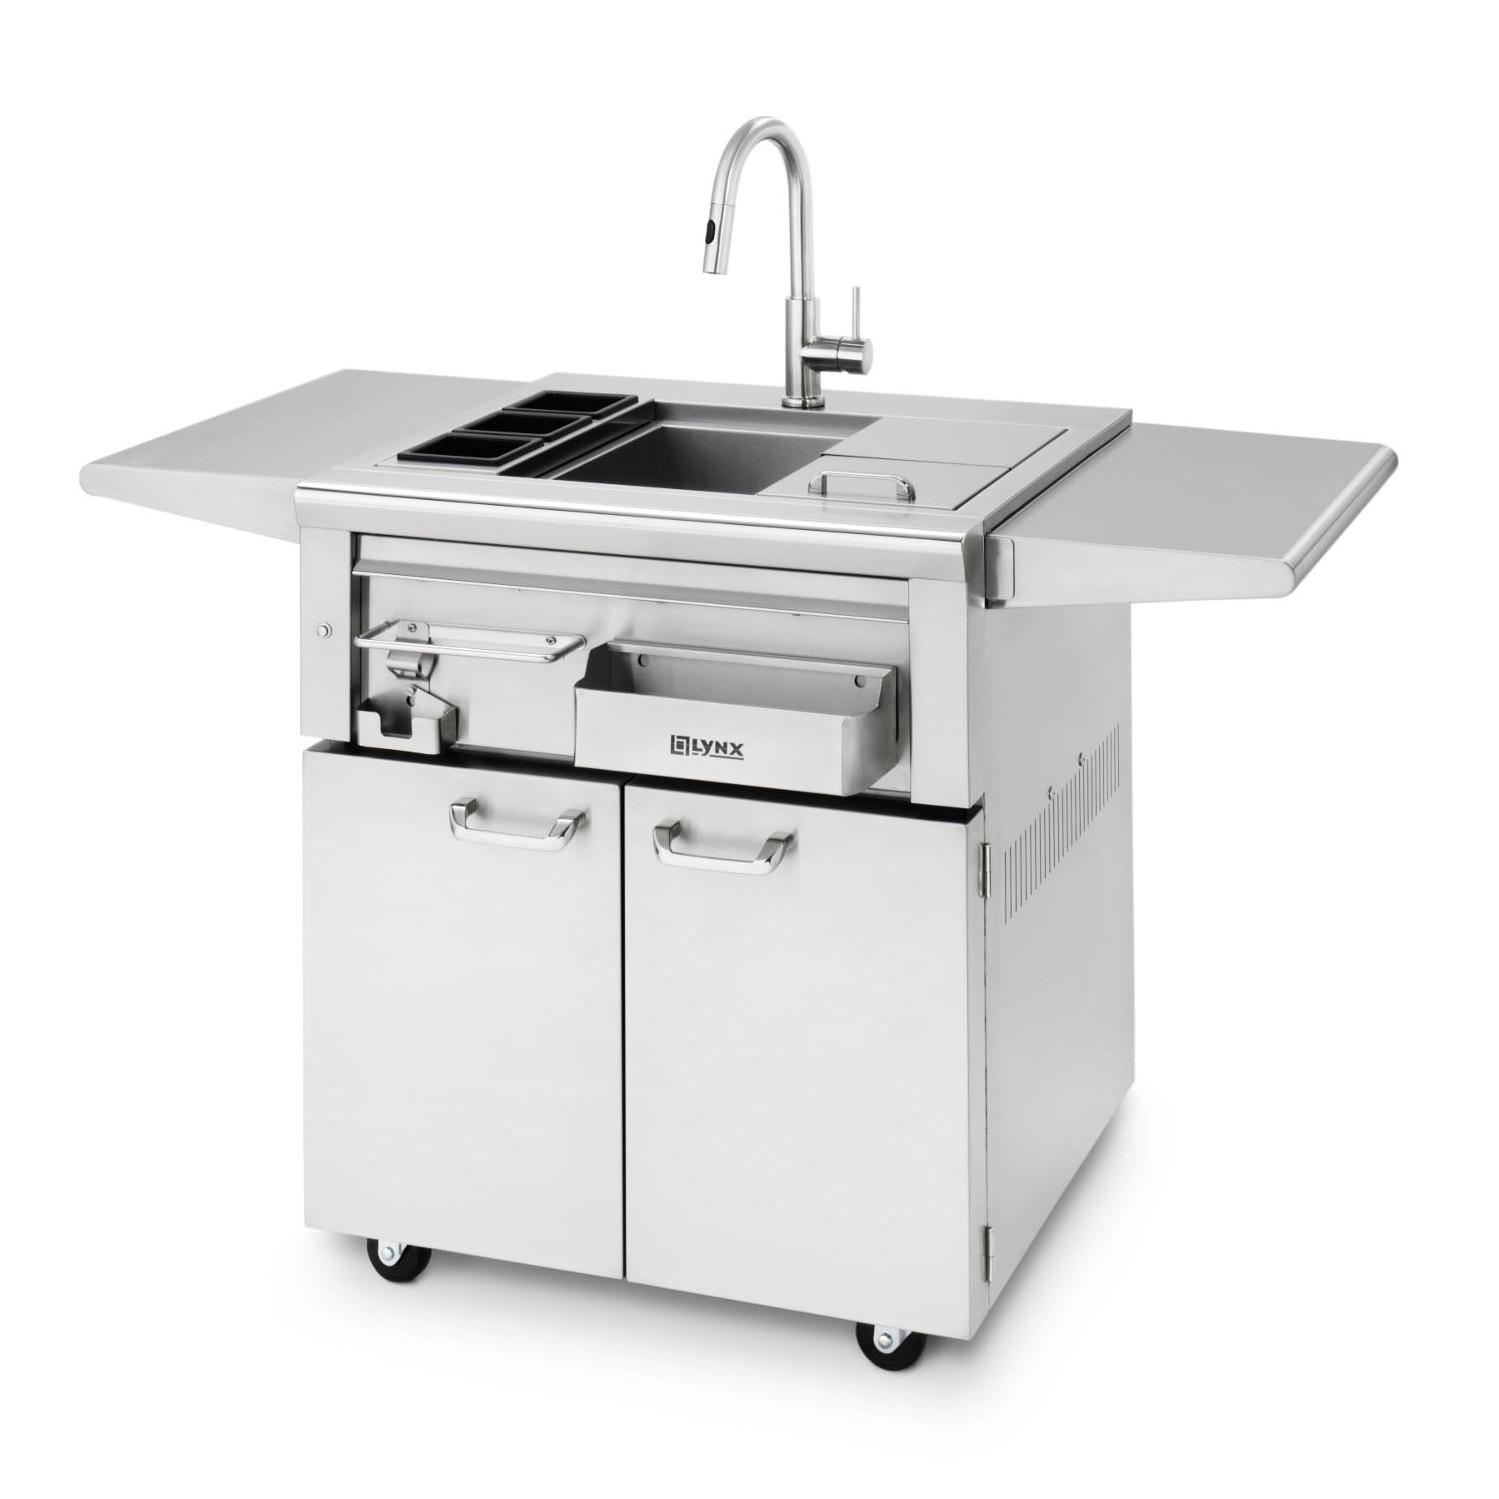 Lynx 30 Inch Freestanding Cocktail Station With Sink Ice Bin Cooler Bbqguys In 2020 Cocktail Station Outdoor Kitchen Sink Modular Outdoor Kitchens